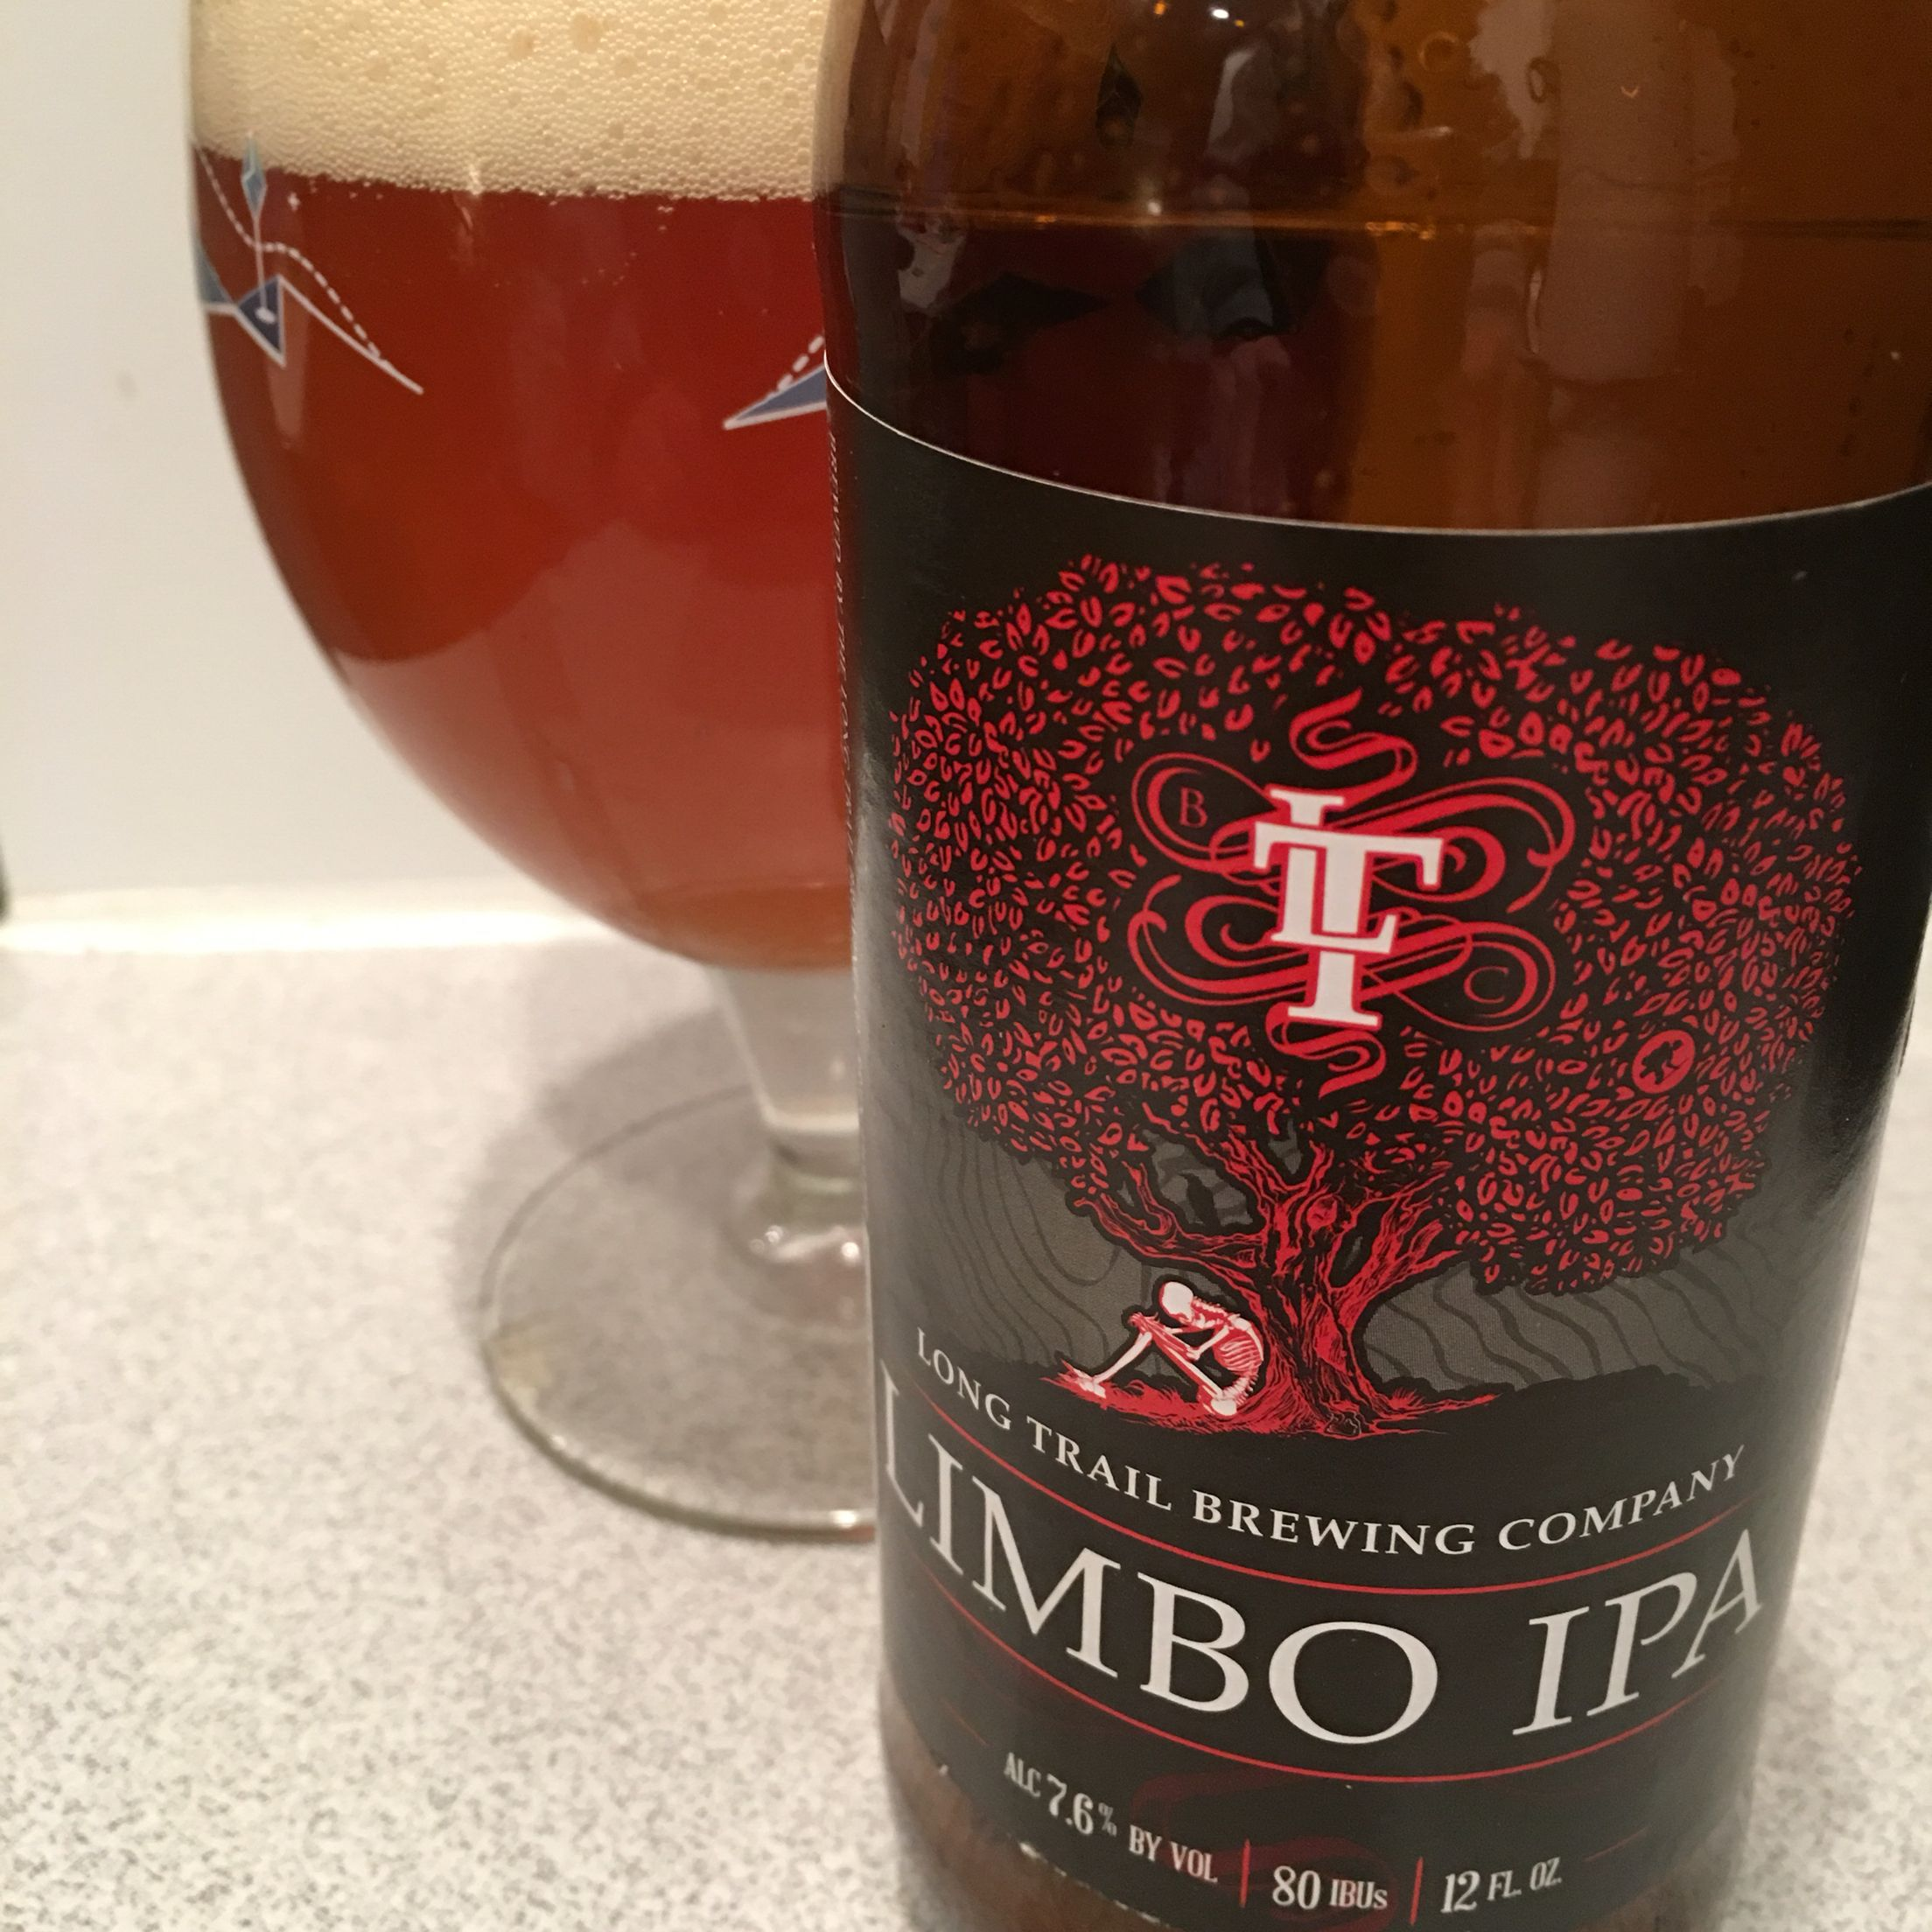 Sunday Limbo Ipa From Long Trail Beer Wine And Beer Beer Brewing Company